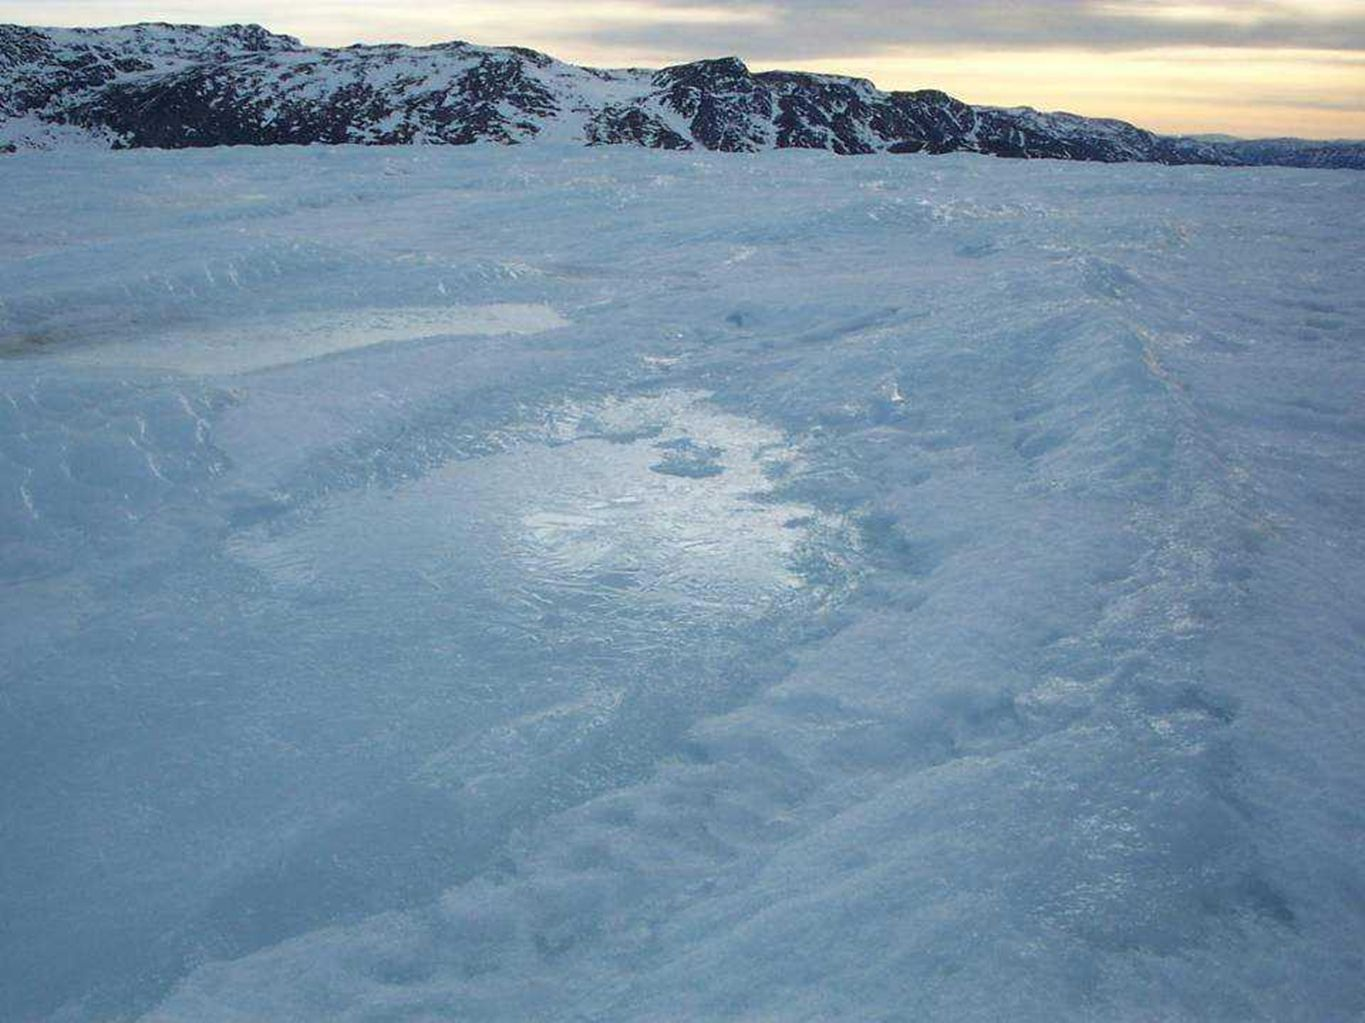 Even early in the Spring, melt lakes begin to form and partially refreeze at night. Each year, more melting occurs, it starts earlier, and it lasts longer.